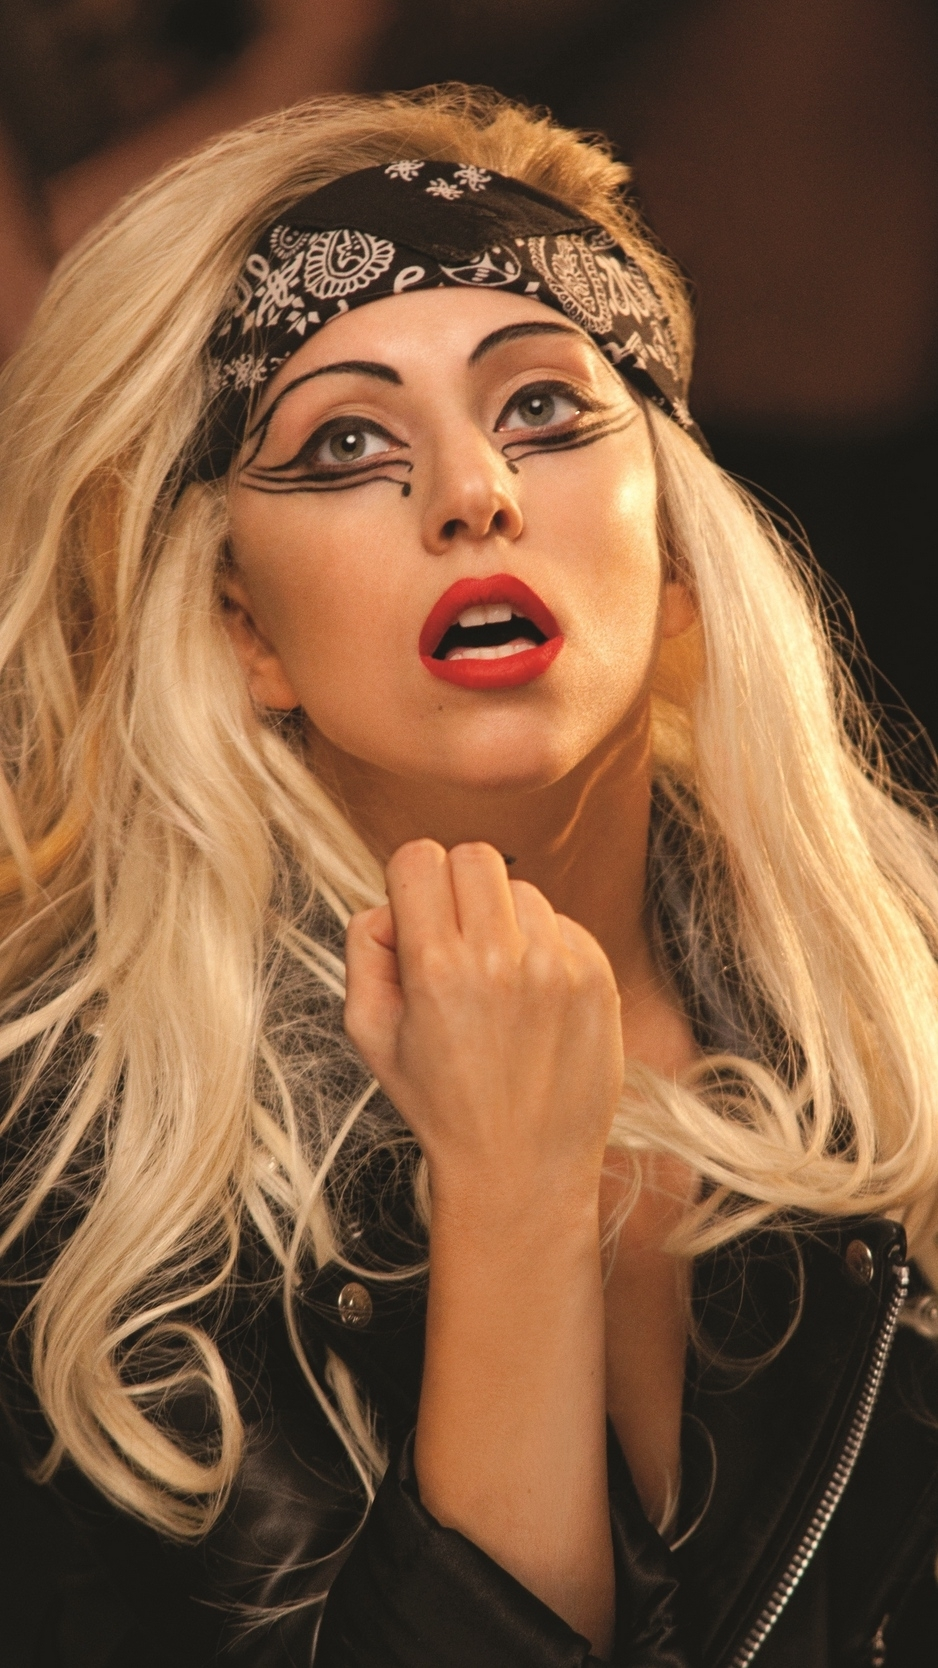 10 Latest Lady Gaga Iphone Wallpaper FULL HD 1080p For PC Background